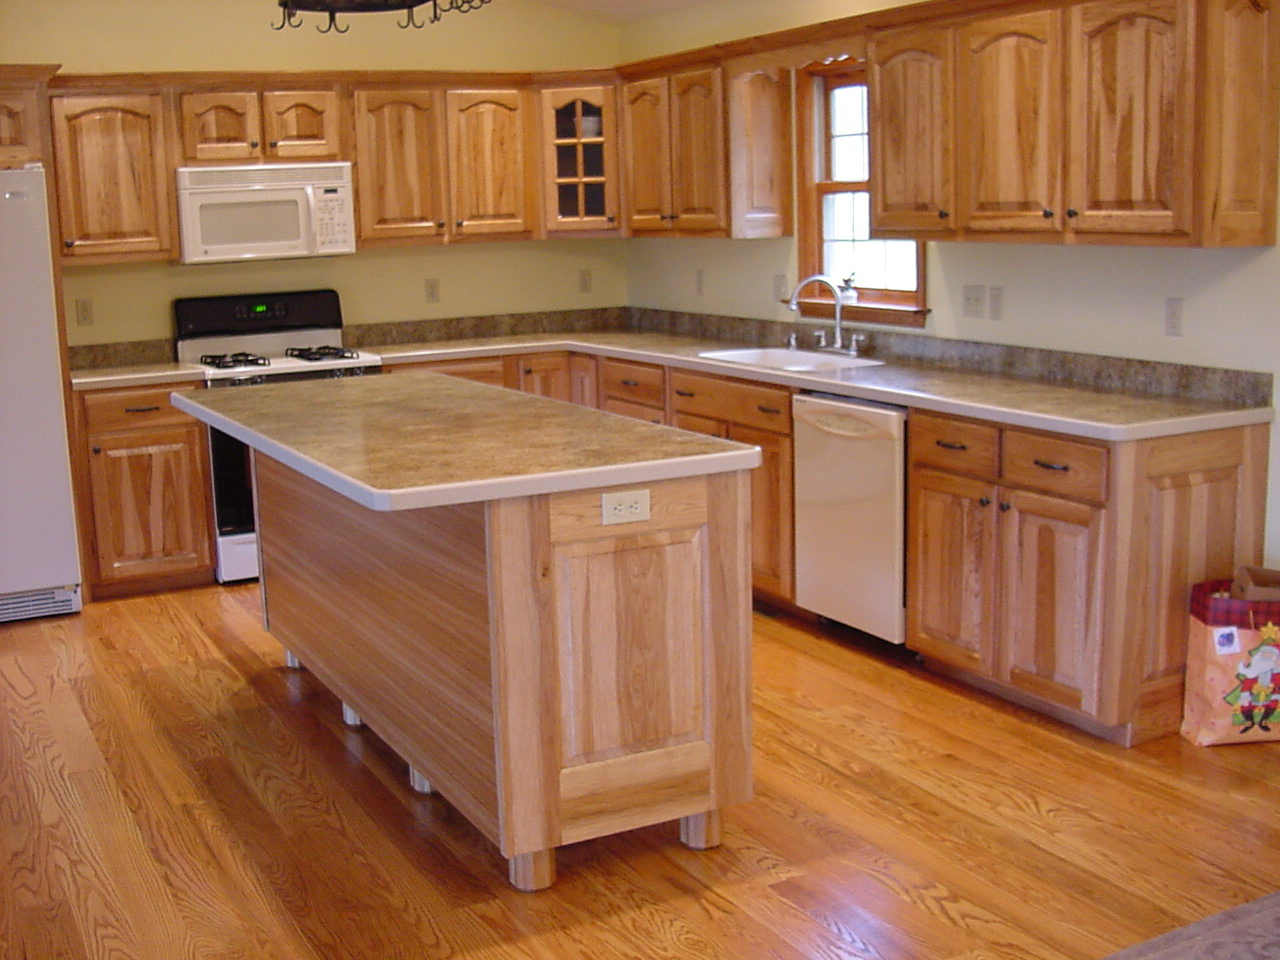 Kitchen Countertops Product : House construction in india kitchens countertop materials